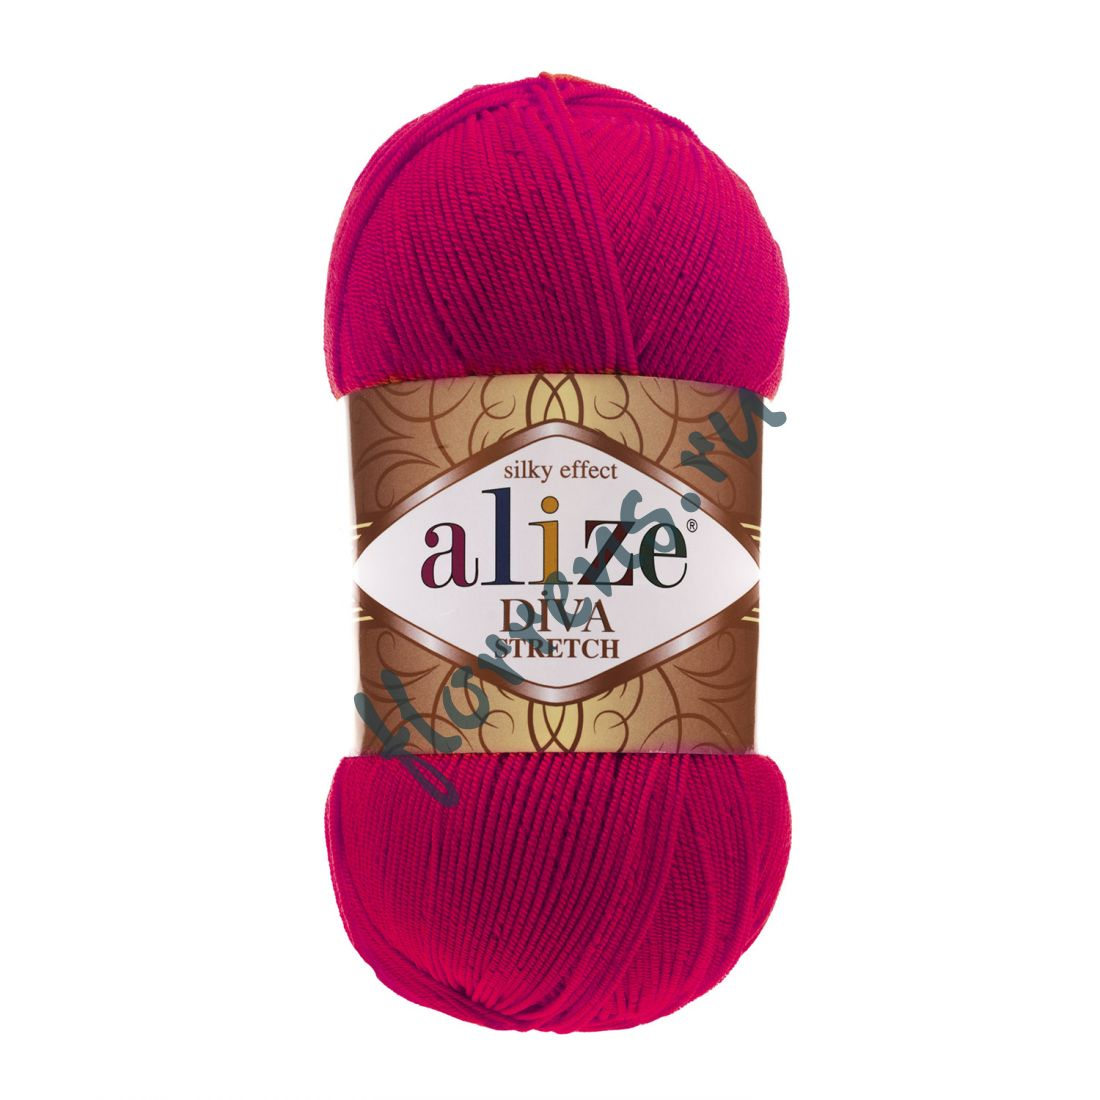 Пряжа Alize Diva Stretch / 396 мак